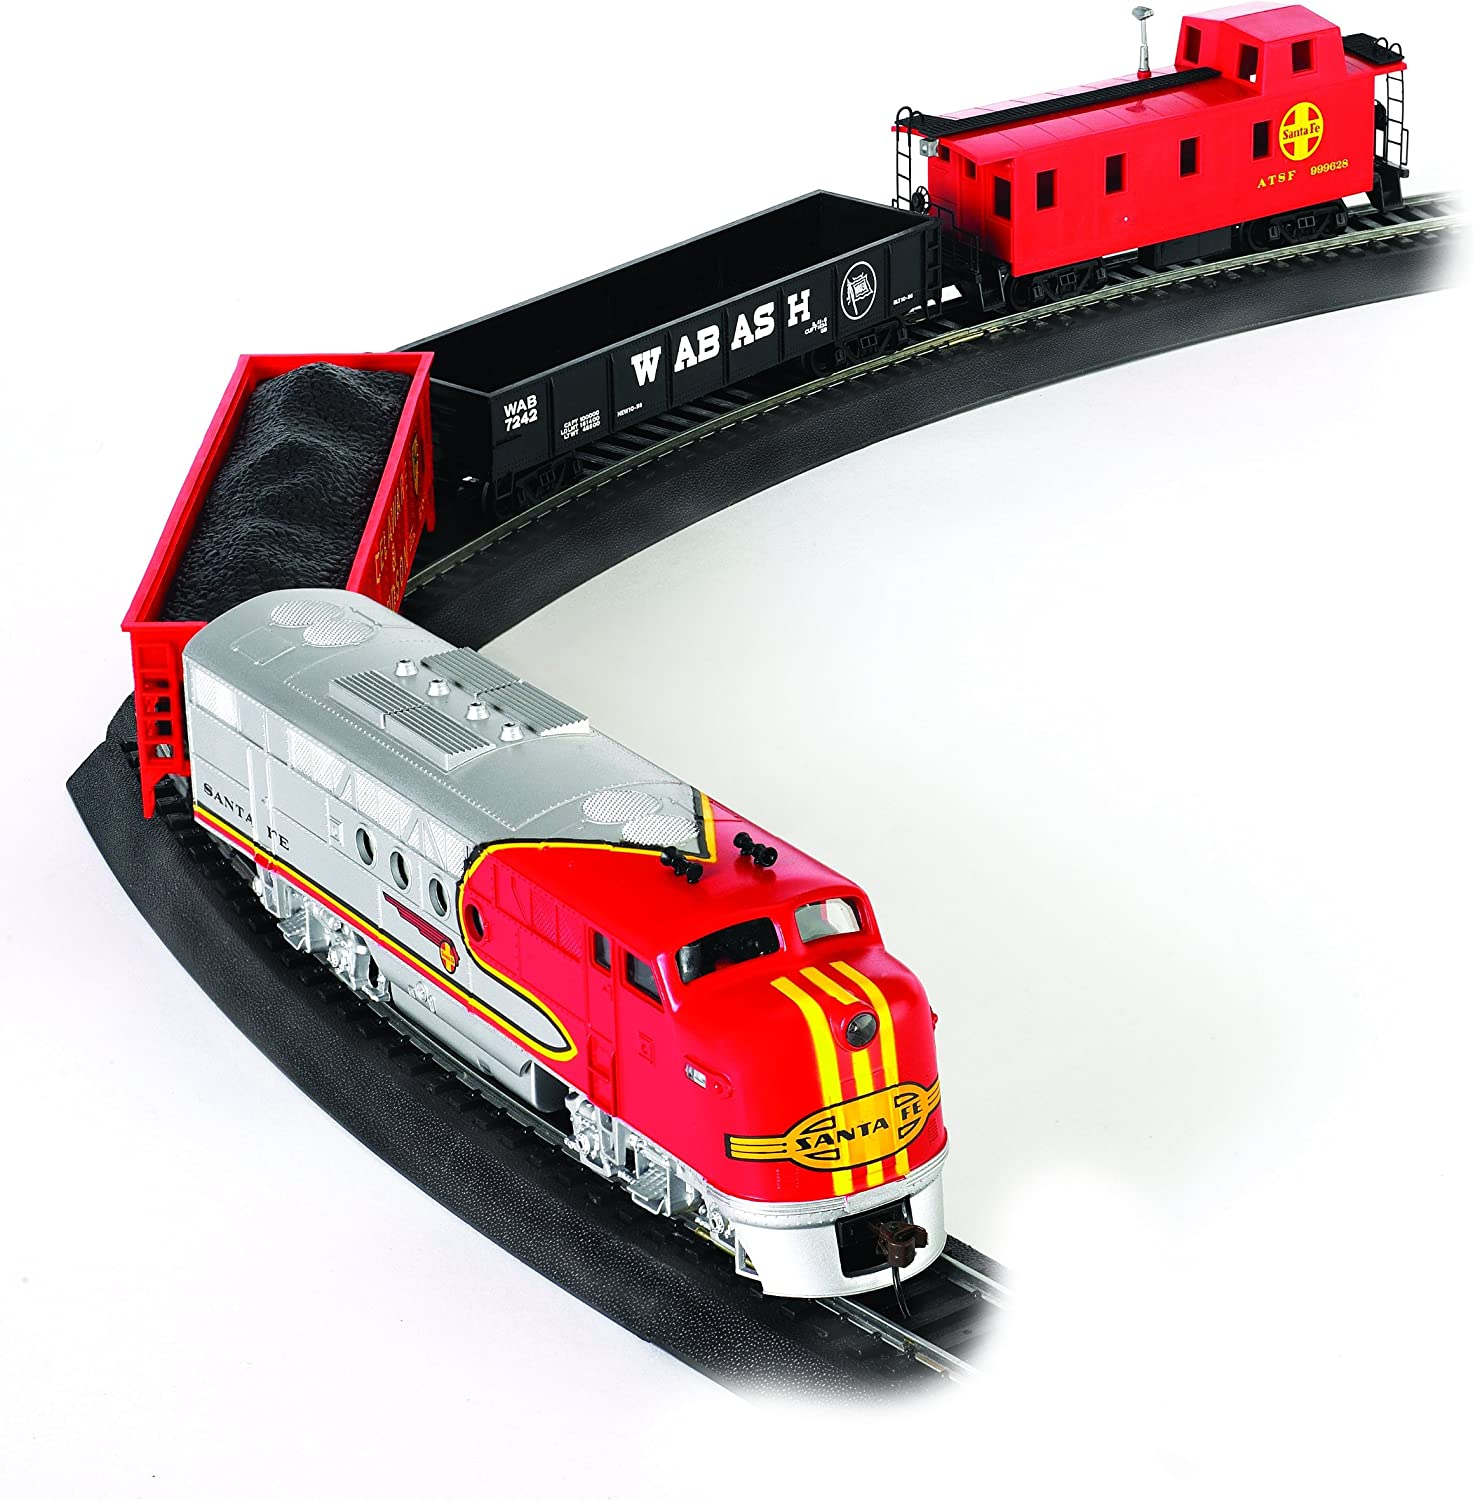 B0006KQGJ8 Bachmann Trains - Santa Fe Flyer Ready To Run Electric Train Set - HO Scale 91MxSLaf1cL.SL1500_